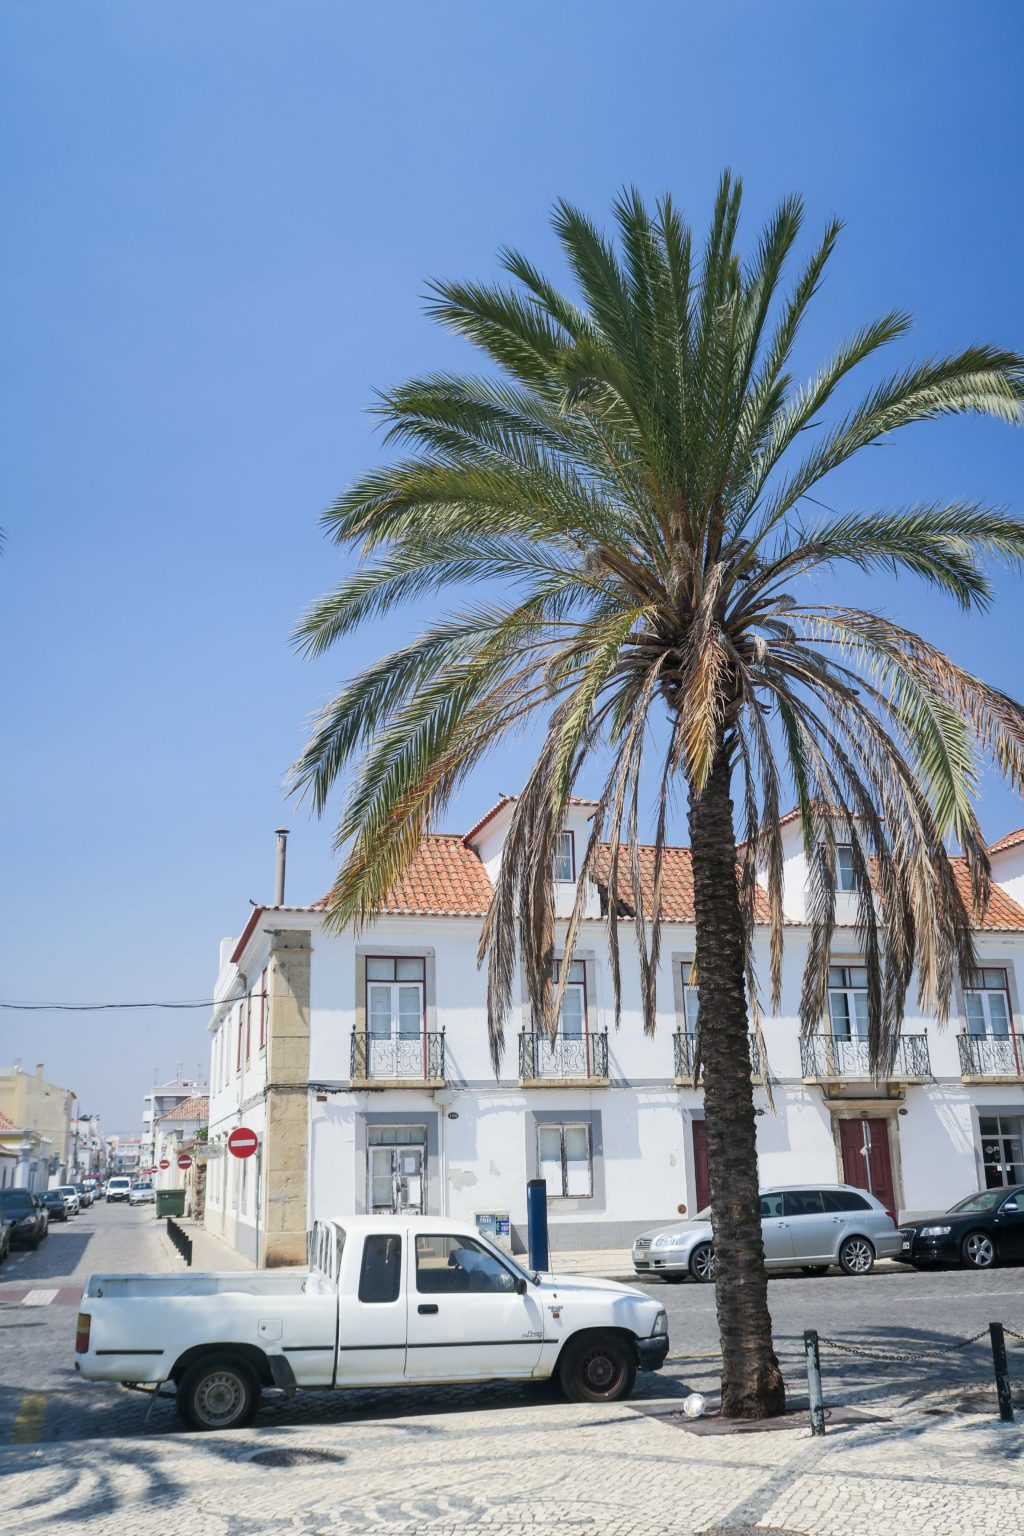 Vila Real de Santo António, Portugal. Travel Diary & Blog by Rosie Andre (Algarve, holiday, voyage, vacation, destination, inspiration, traveller, globe trotter, beach, town, city, harbour, harbor, port, photo, photography, blogger, travelling, architecture, tourist, place, guide, day trip)